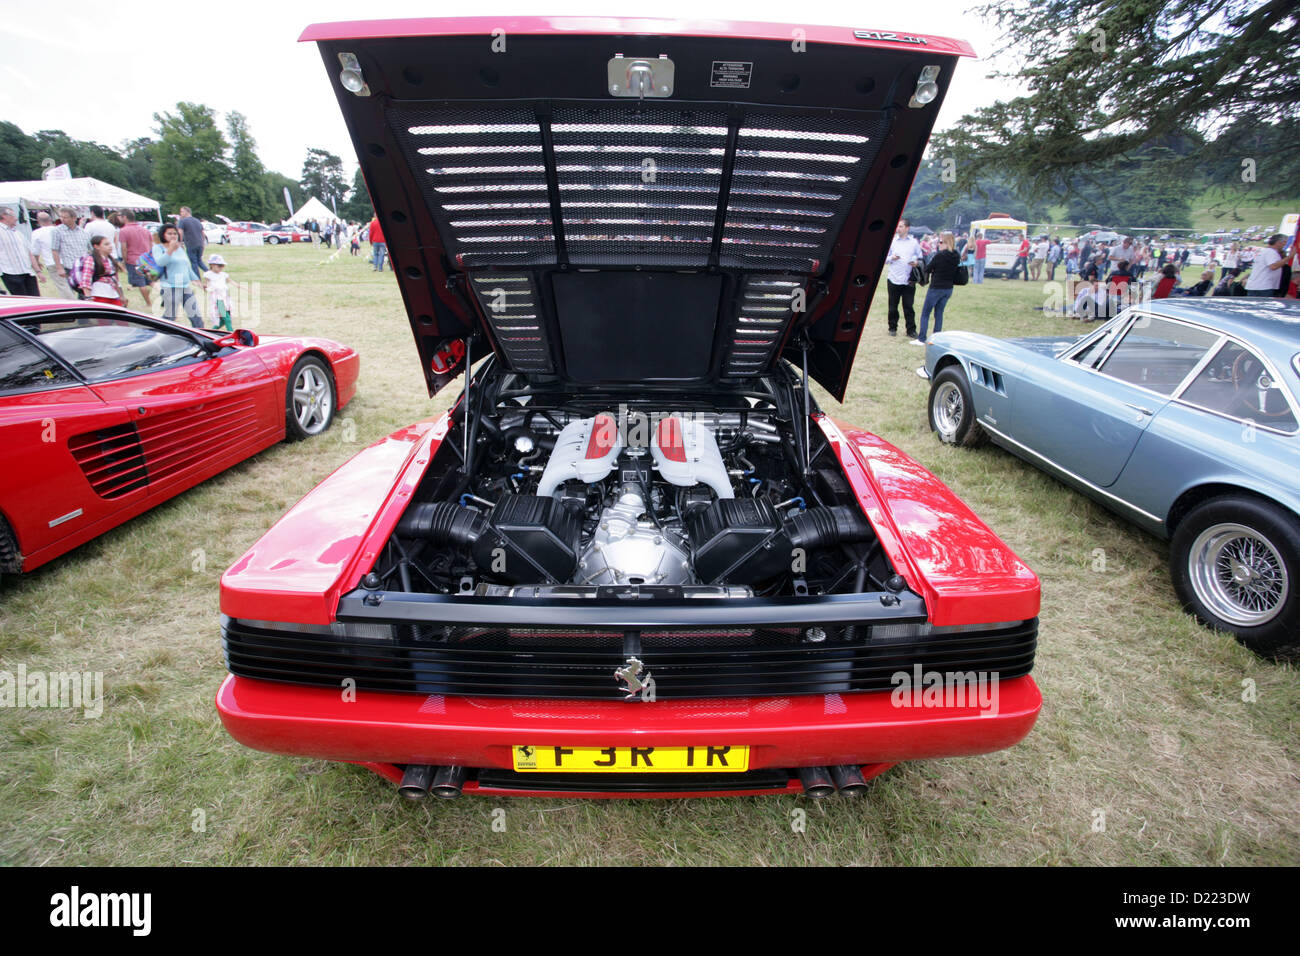 Ferrari 512 stock photos ferrari 512 stock images alamy a ferrari 512 tr testarossa showing the 49 litre v12 engine in all its vanachro Images